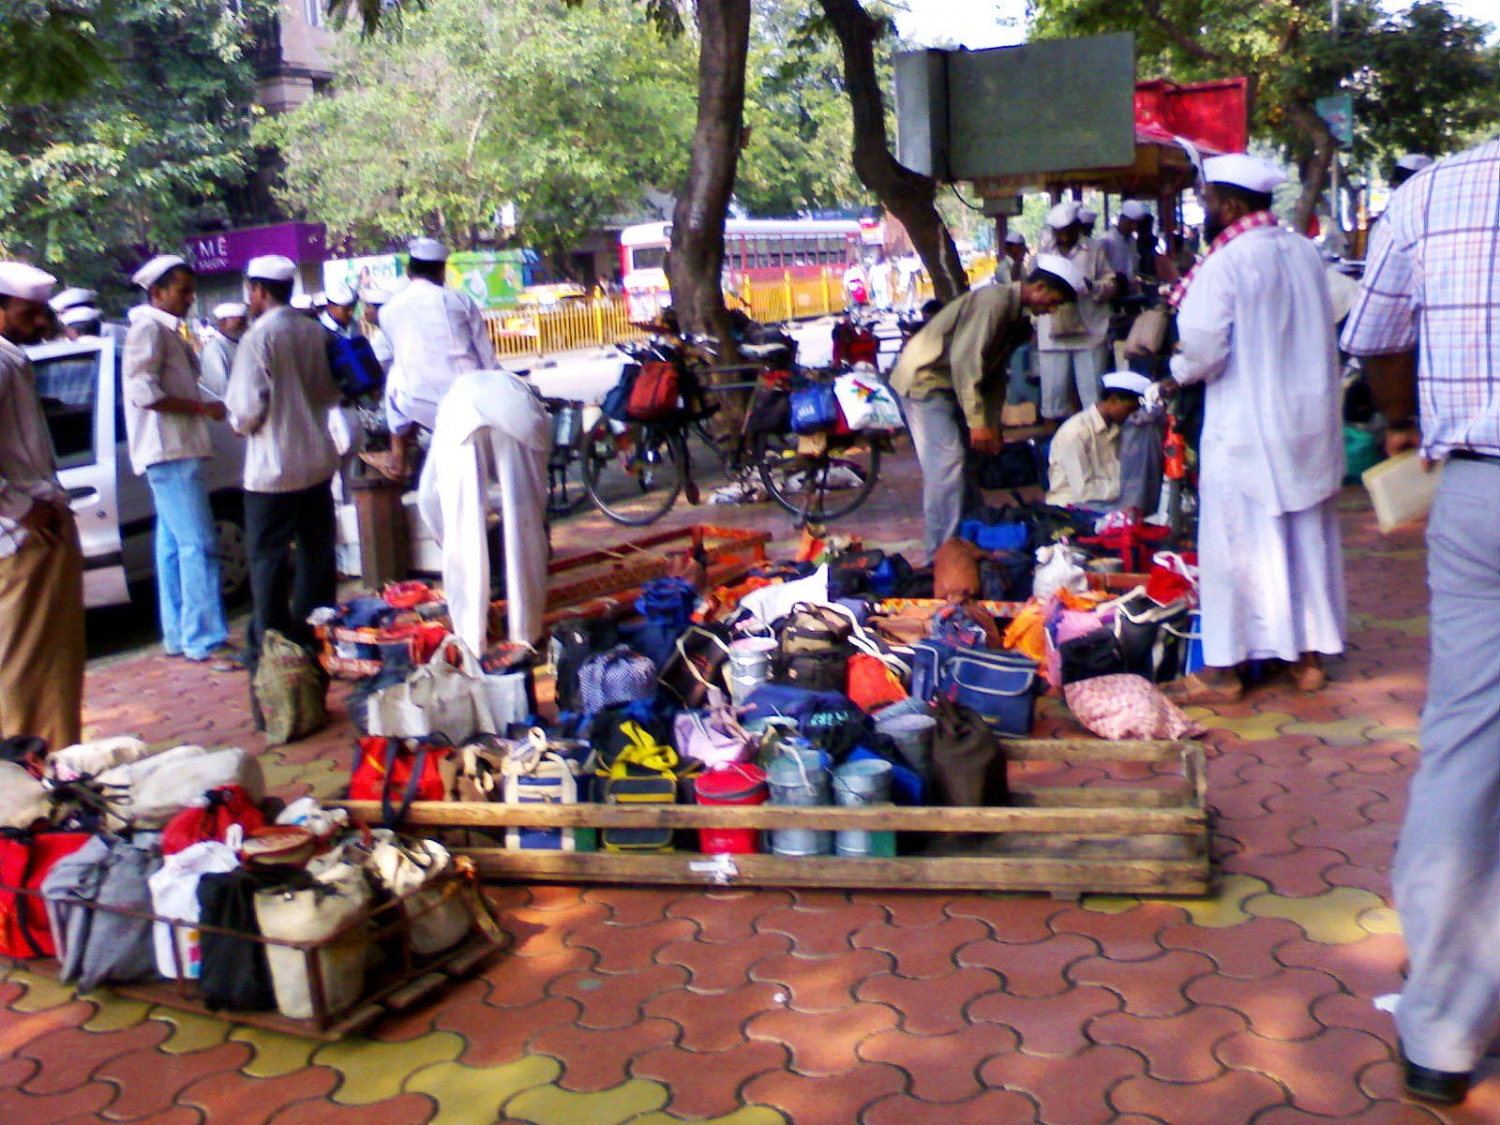 Dabbawalas on the roadside